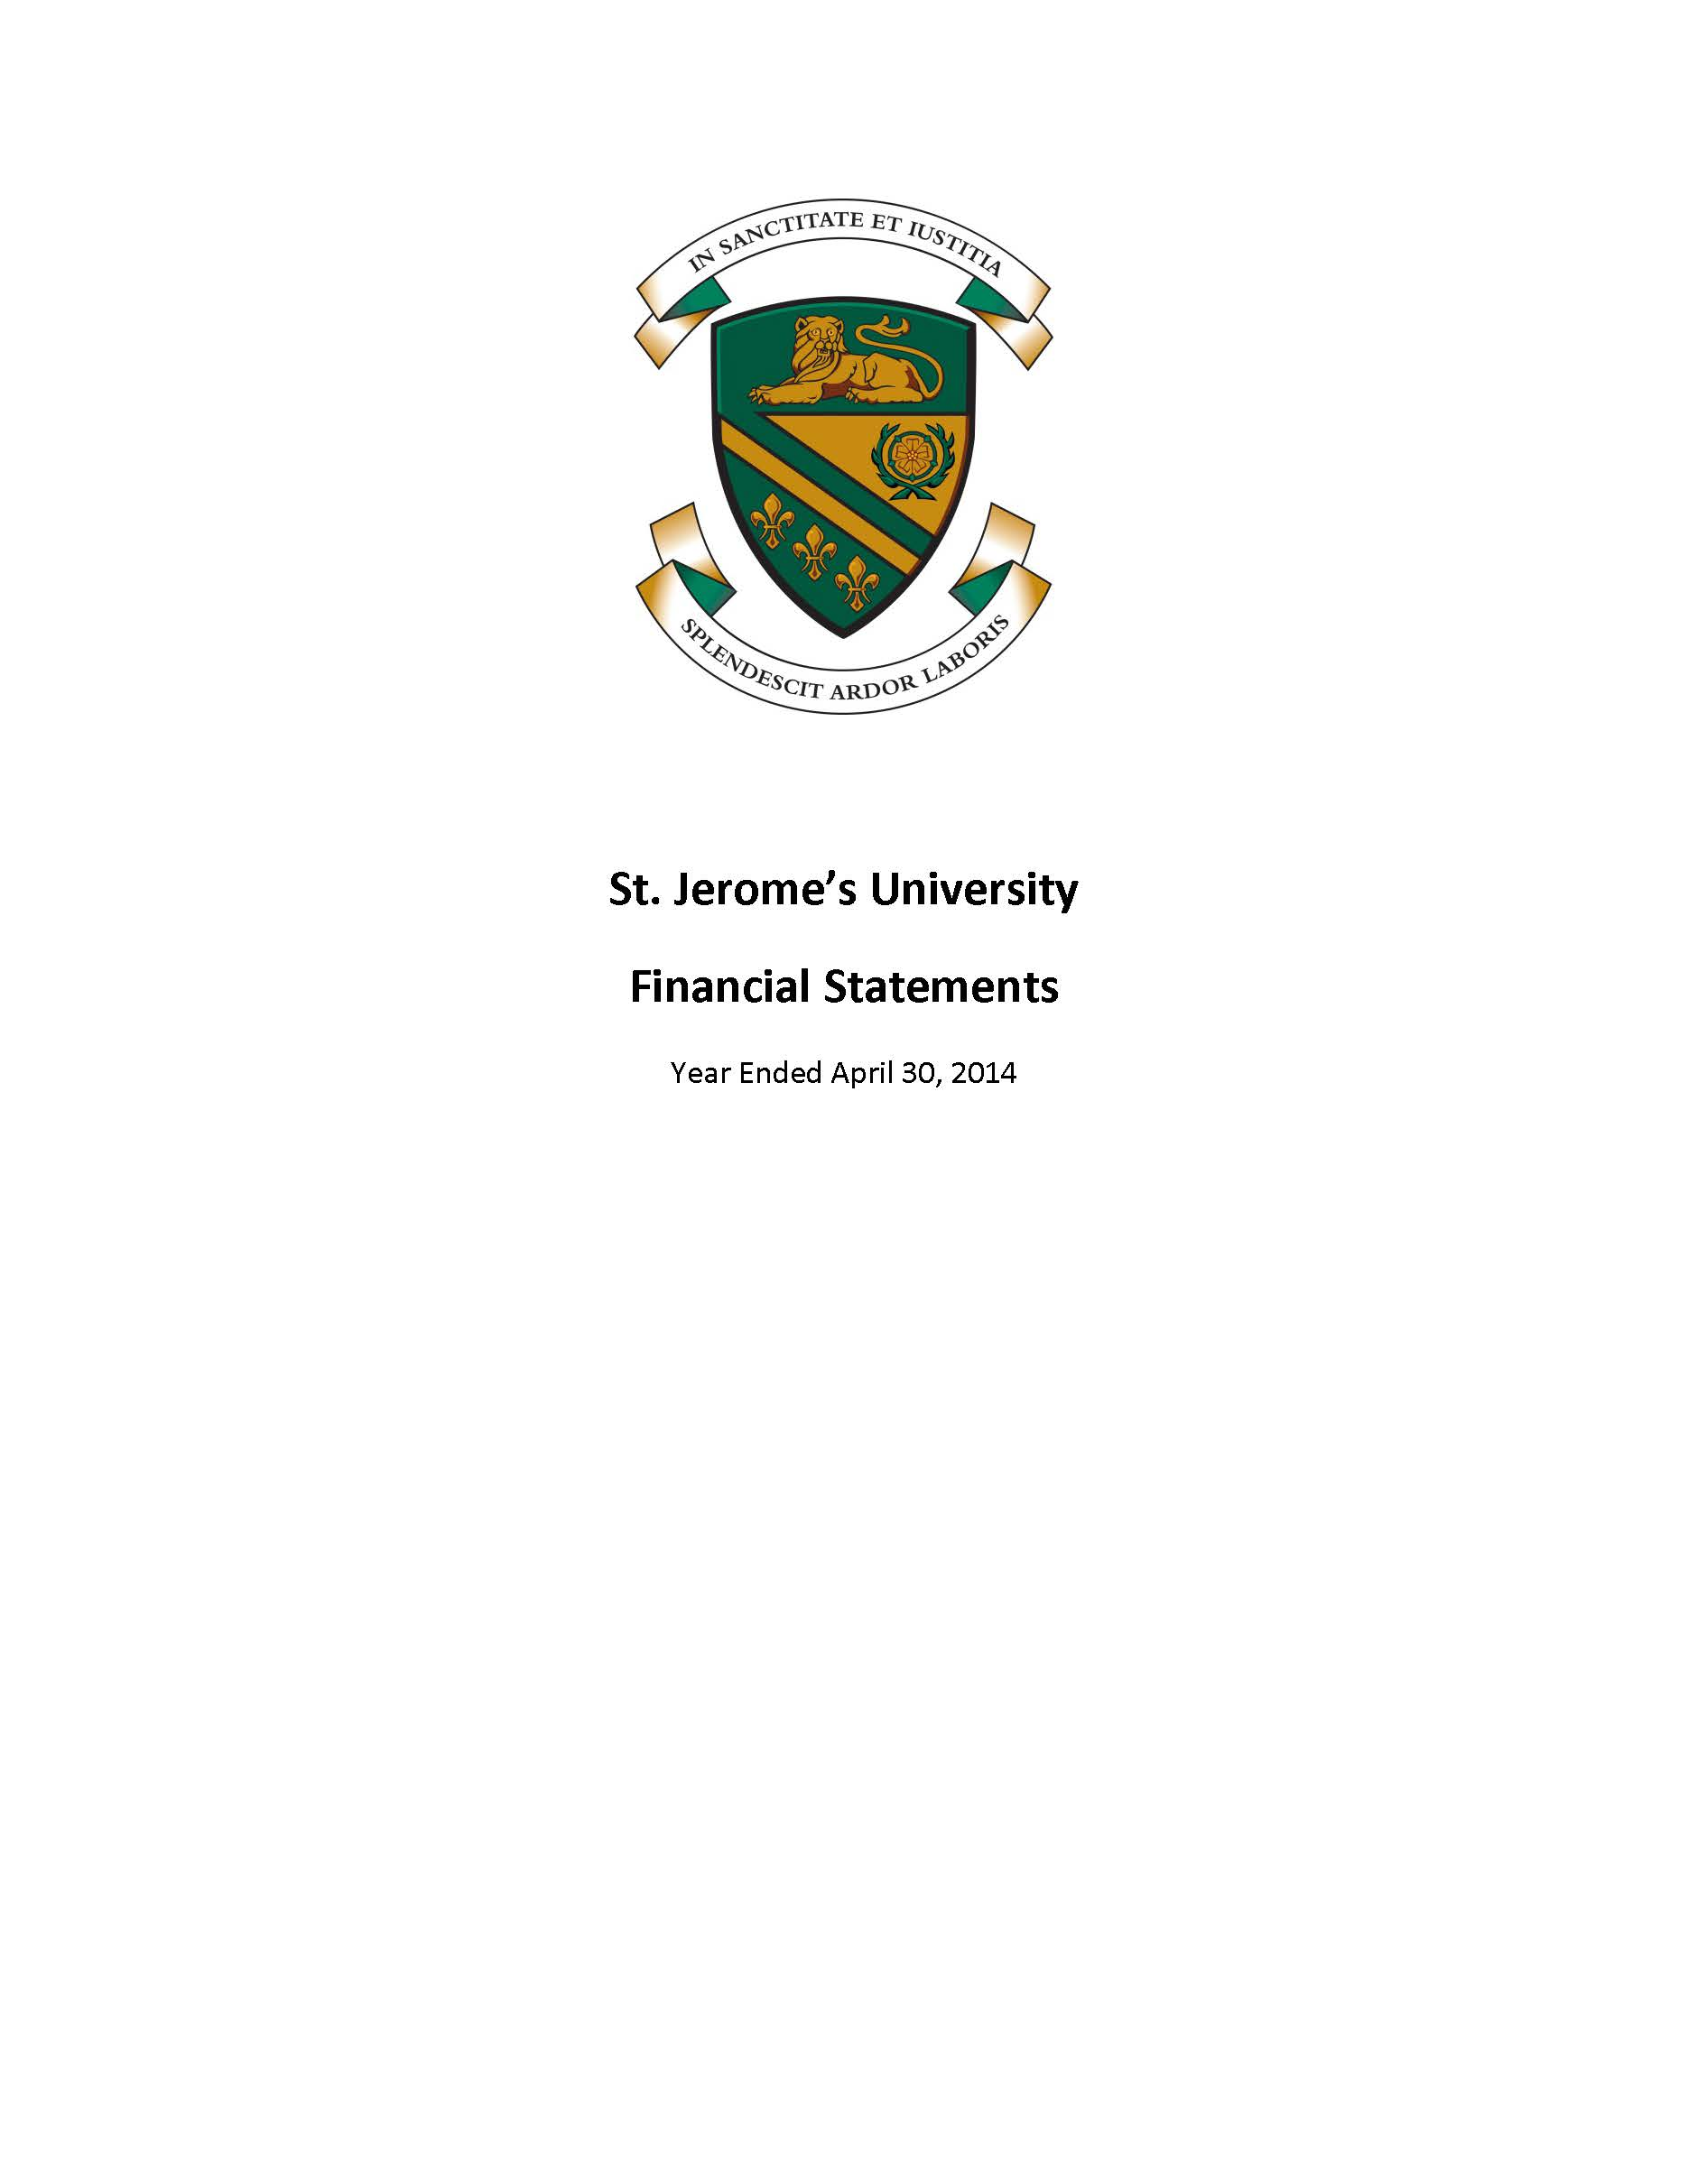 SJU Financial Statements Ending 2014